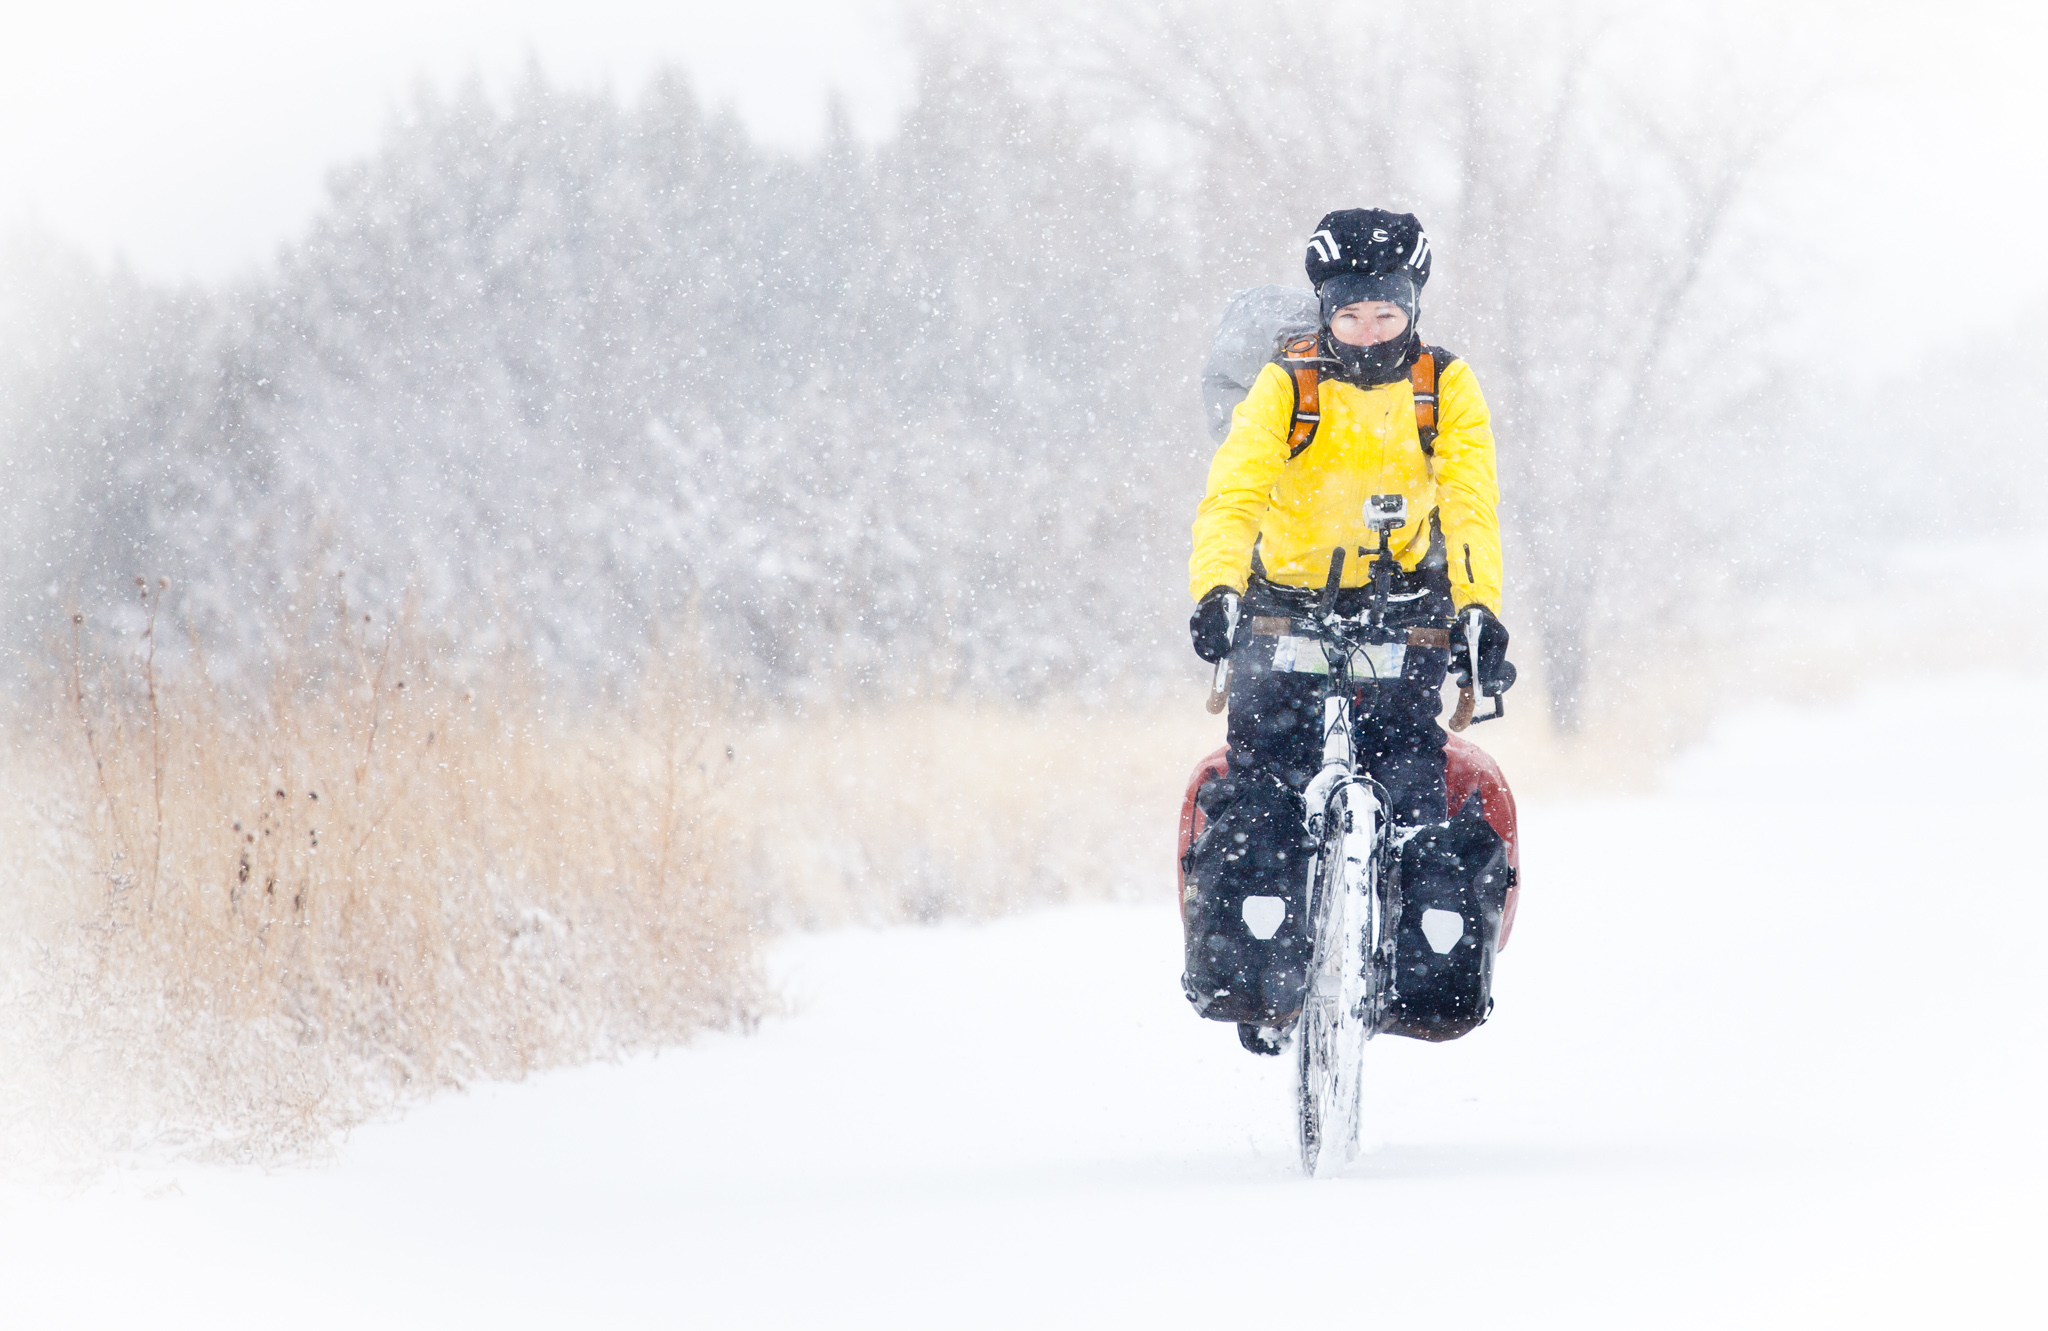 Coppola Photography - biking in the snow